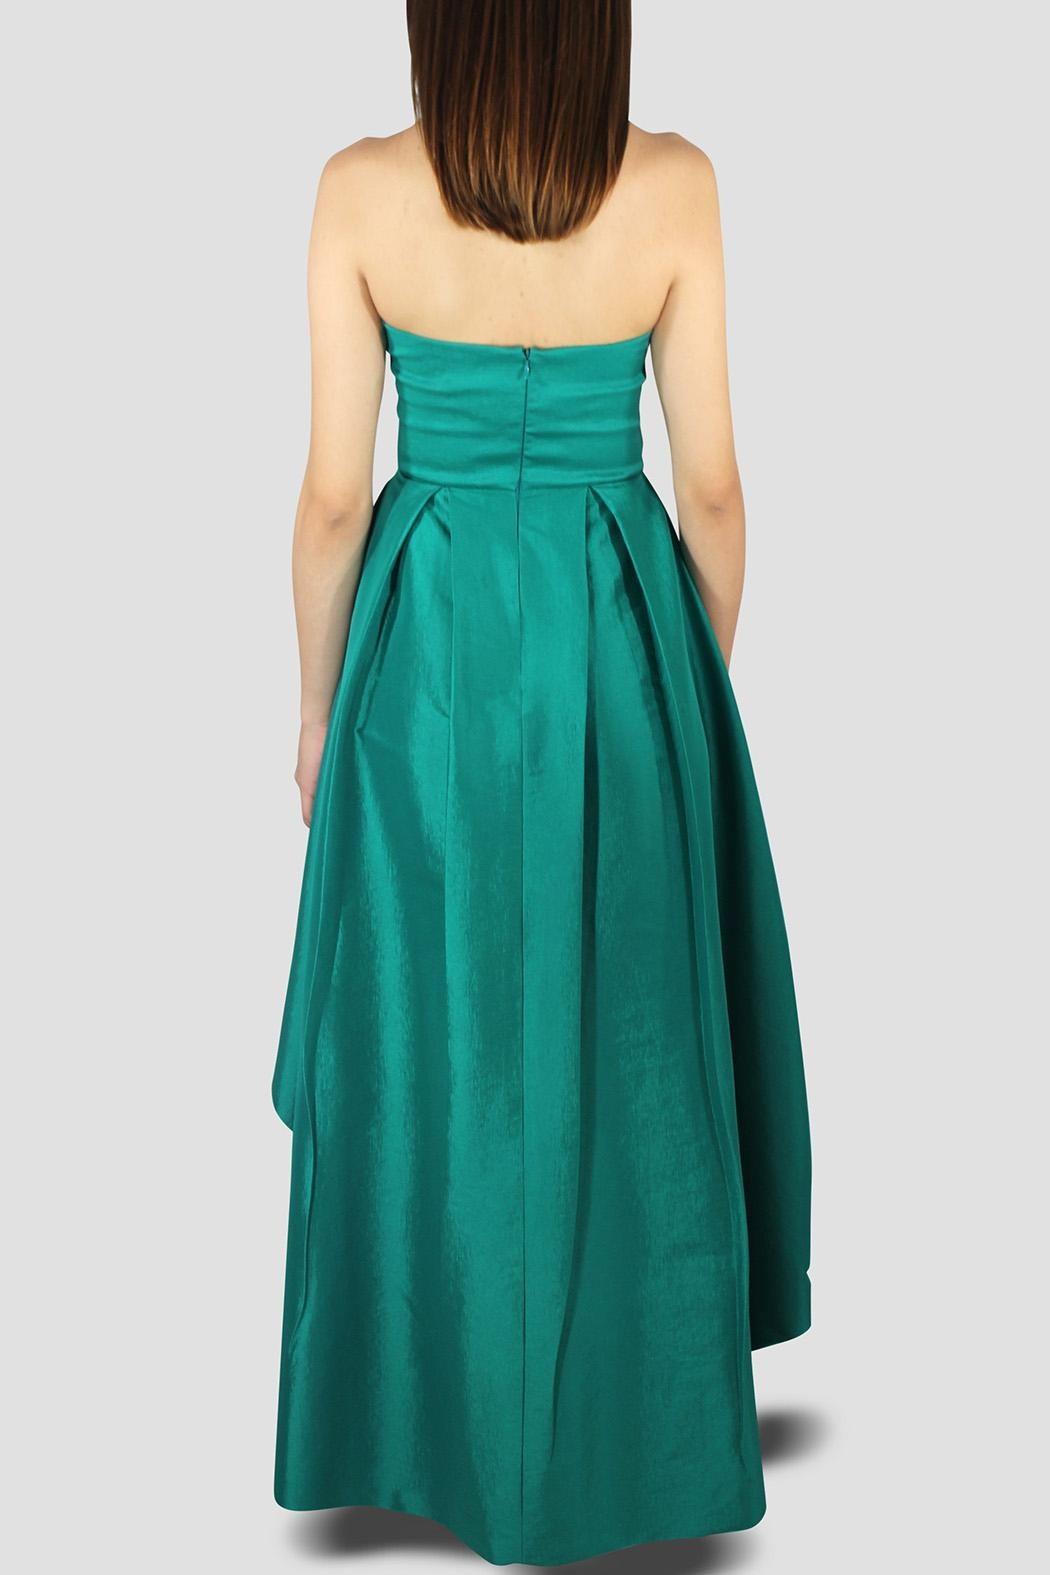 SoZu High-Low Draped Strapless - Side Cropped Image